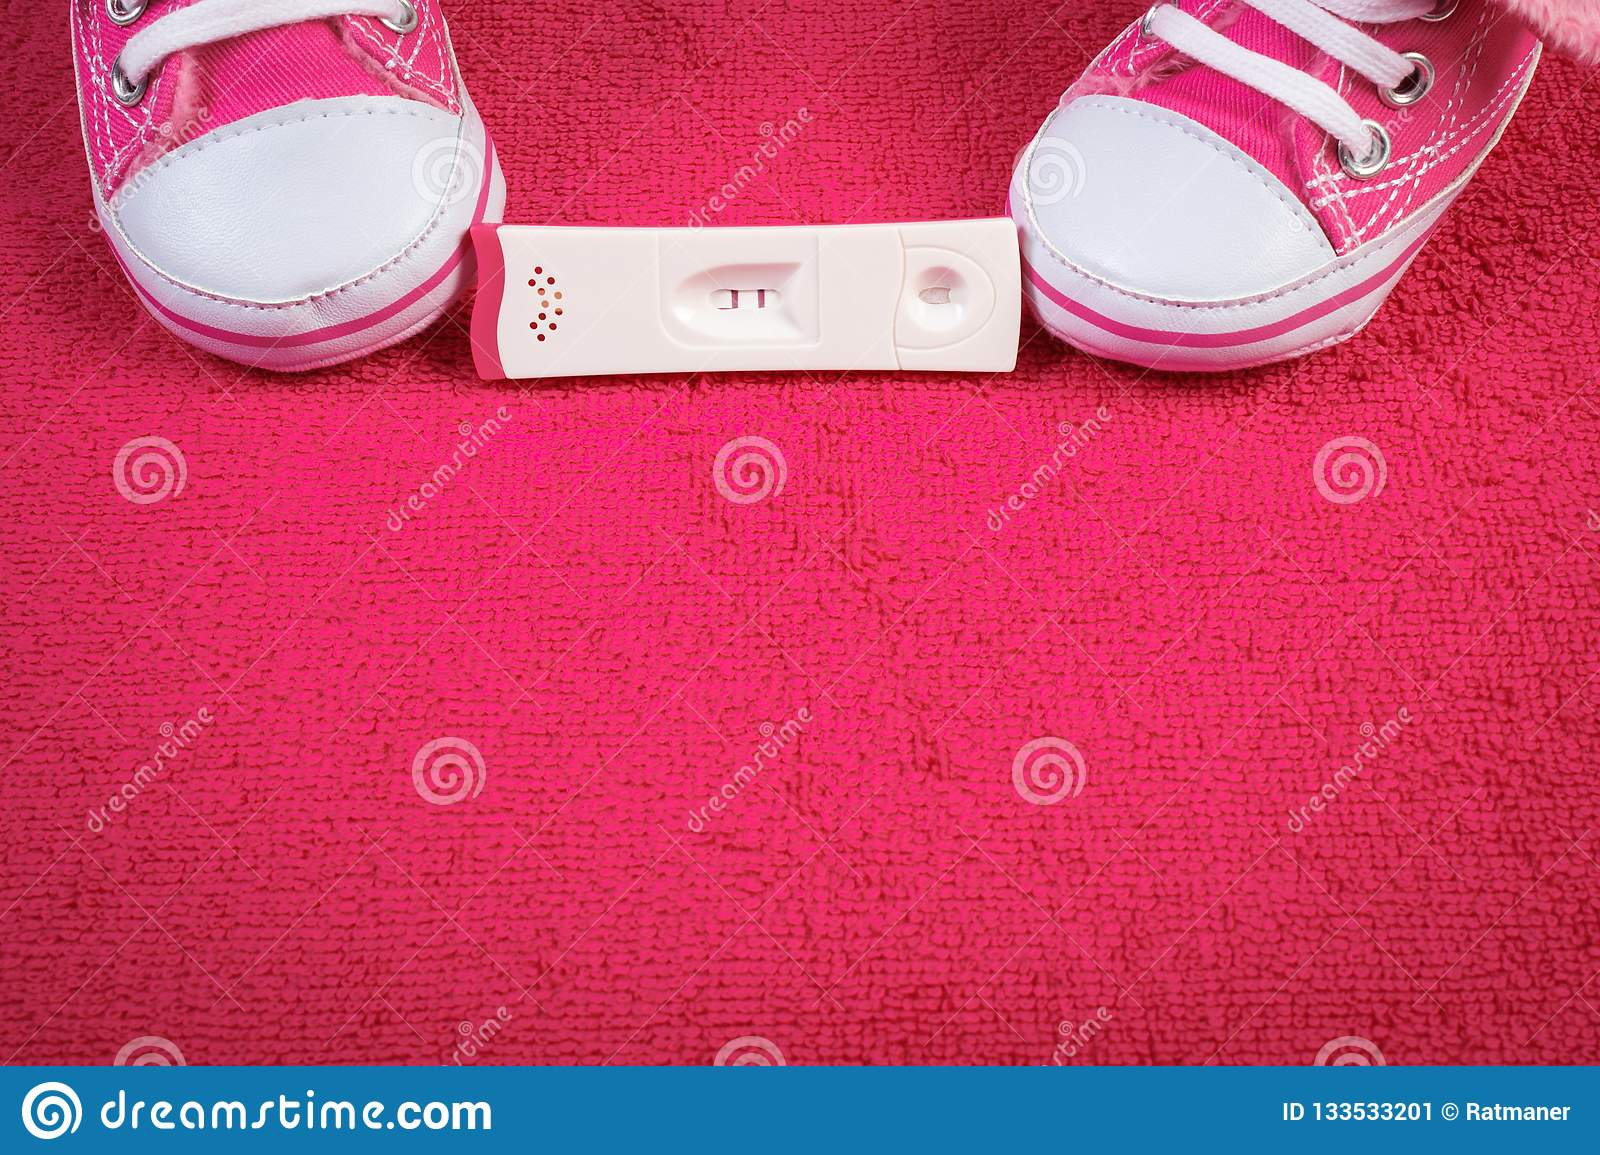 Pregnancy Test With Positive Result And Baby Shoes ...